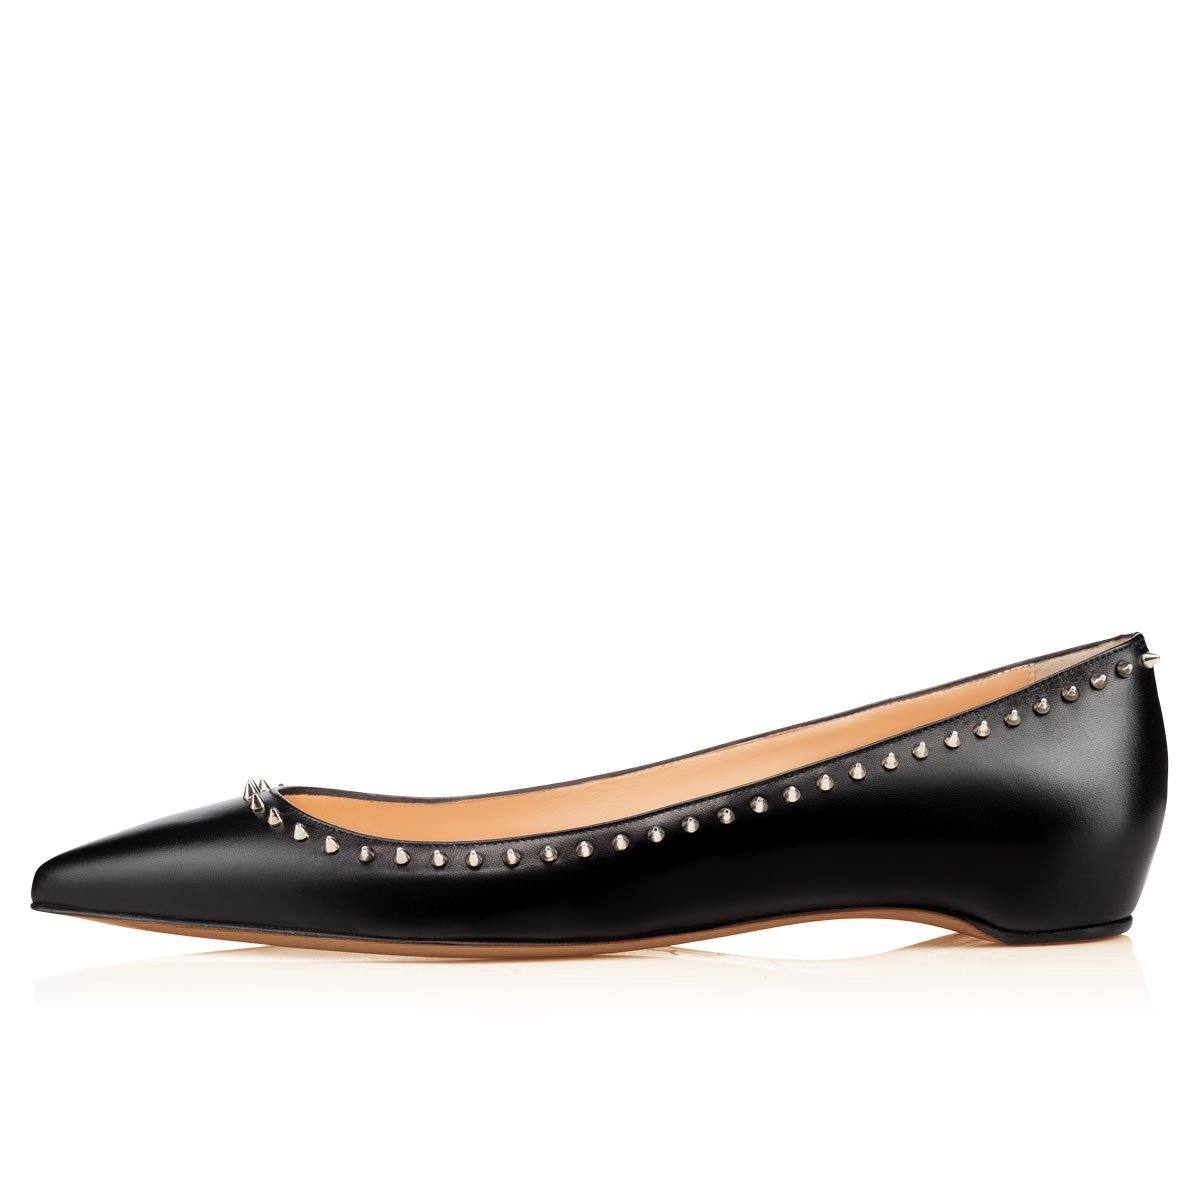 Mermaid Women's Shoes Pointed Toe Spiked Rivets Comfortable Flats B071R7VK7W US 7 Feet length 9.25